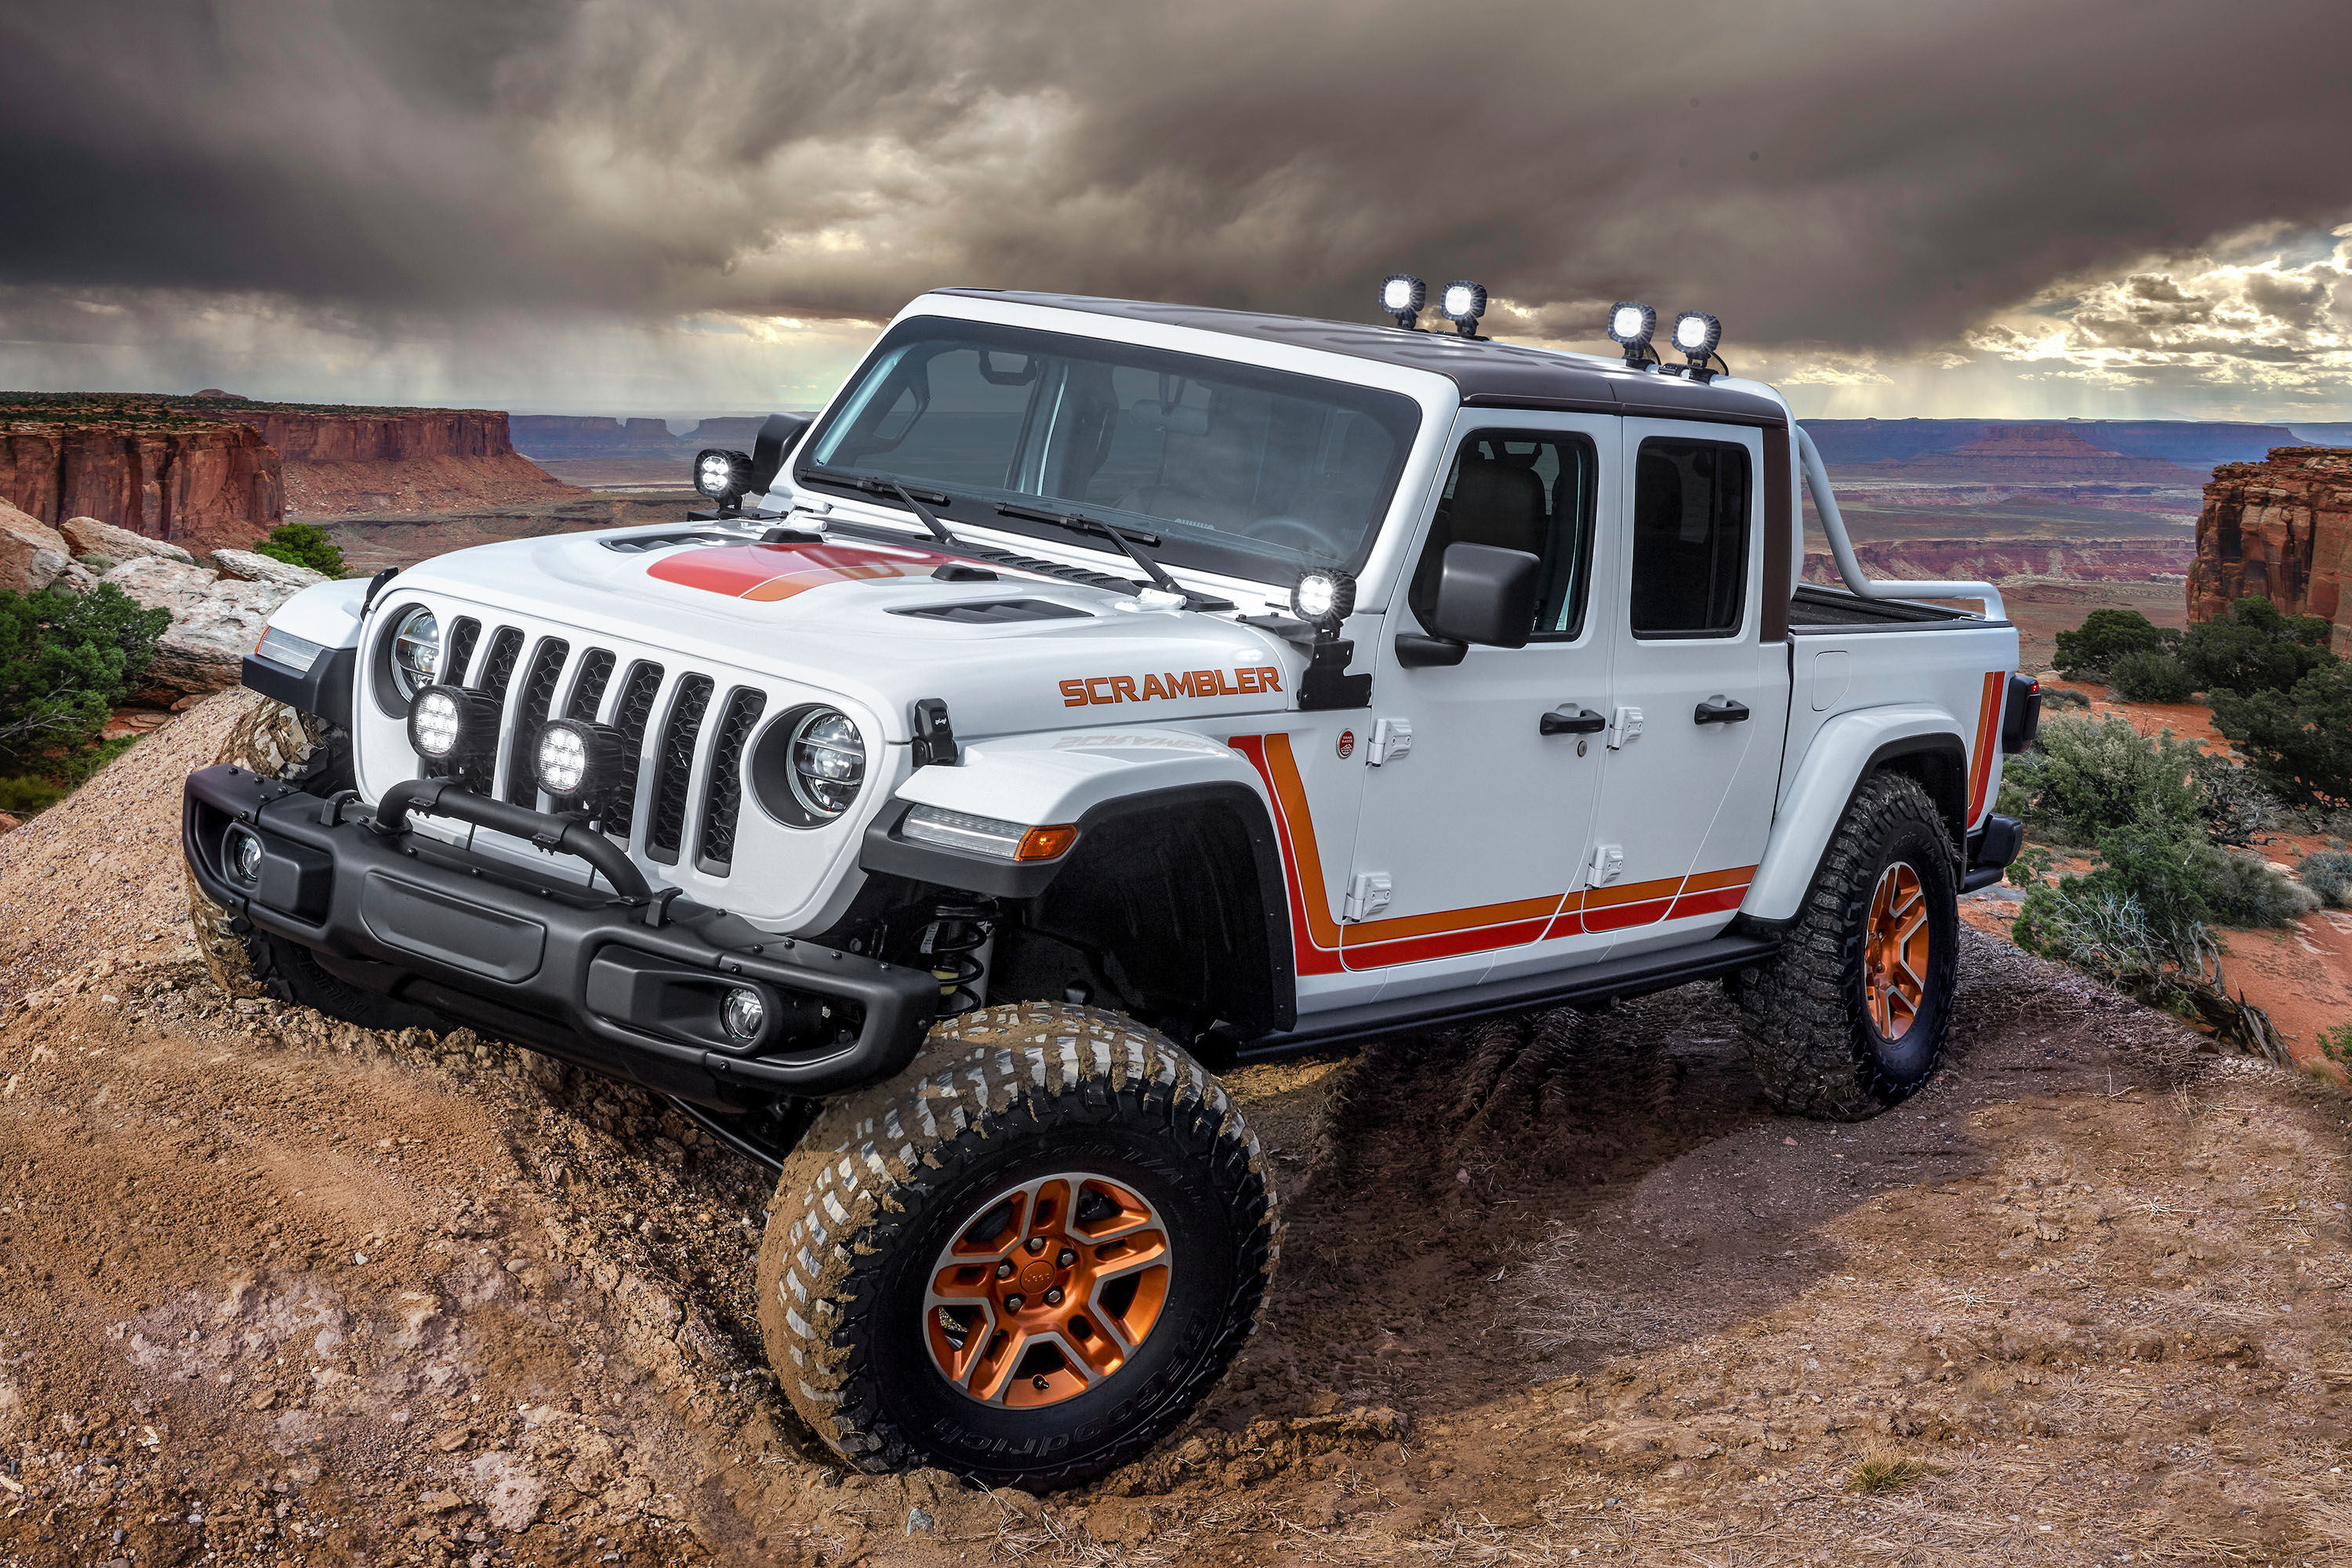 Jeep Just Released 6 Badass Easter Safari Truck Concepts Gearjunkie